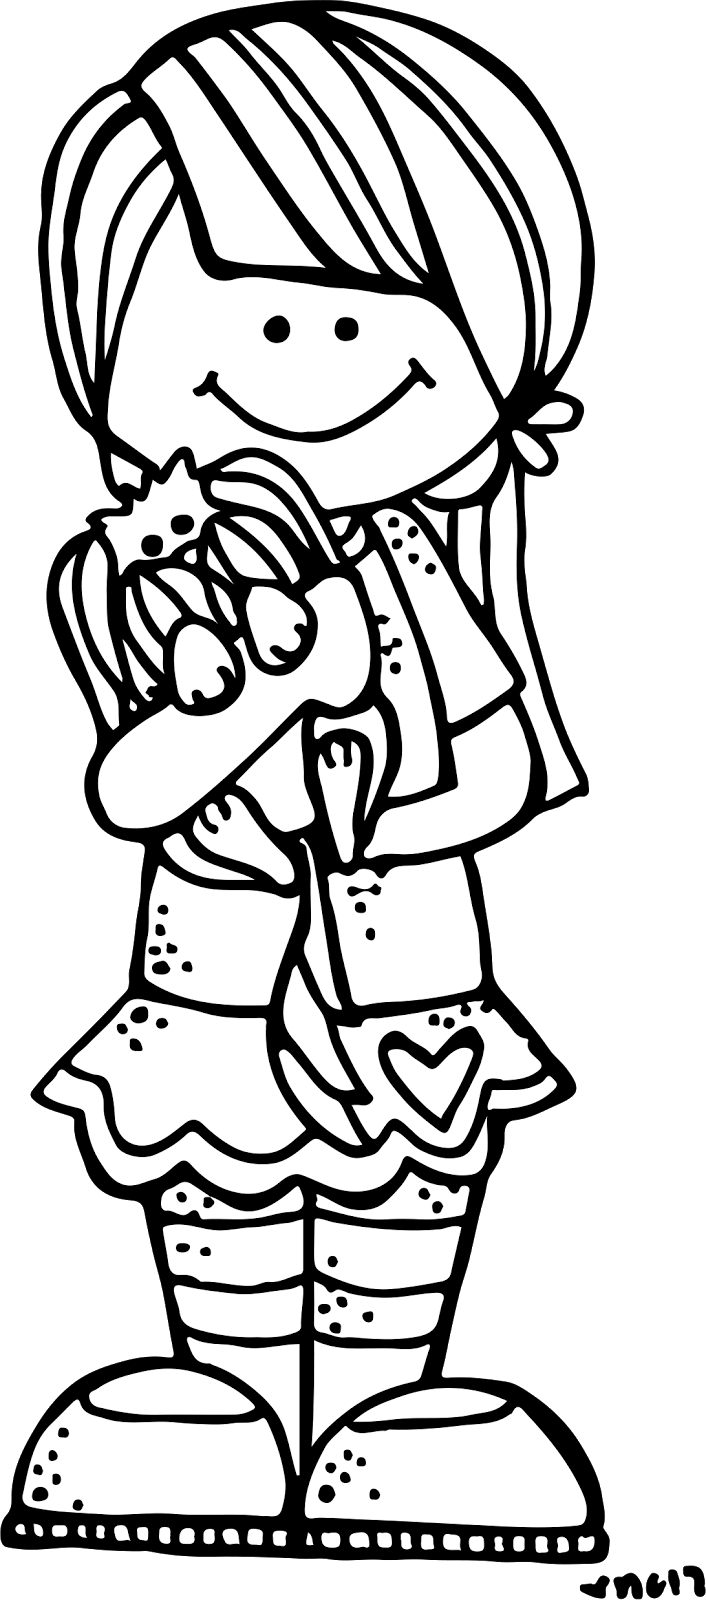 White clipart love. Melonheadz happy national your